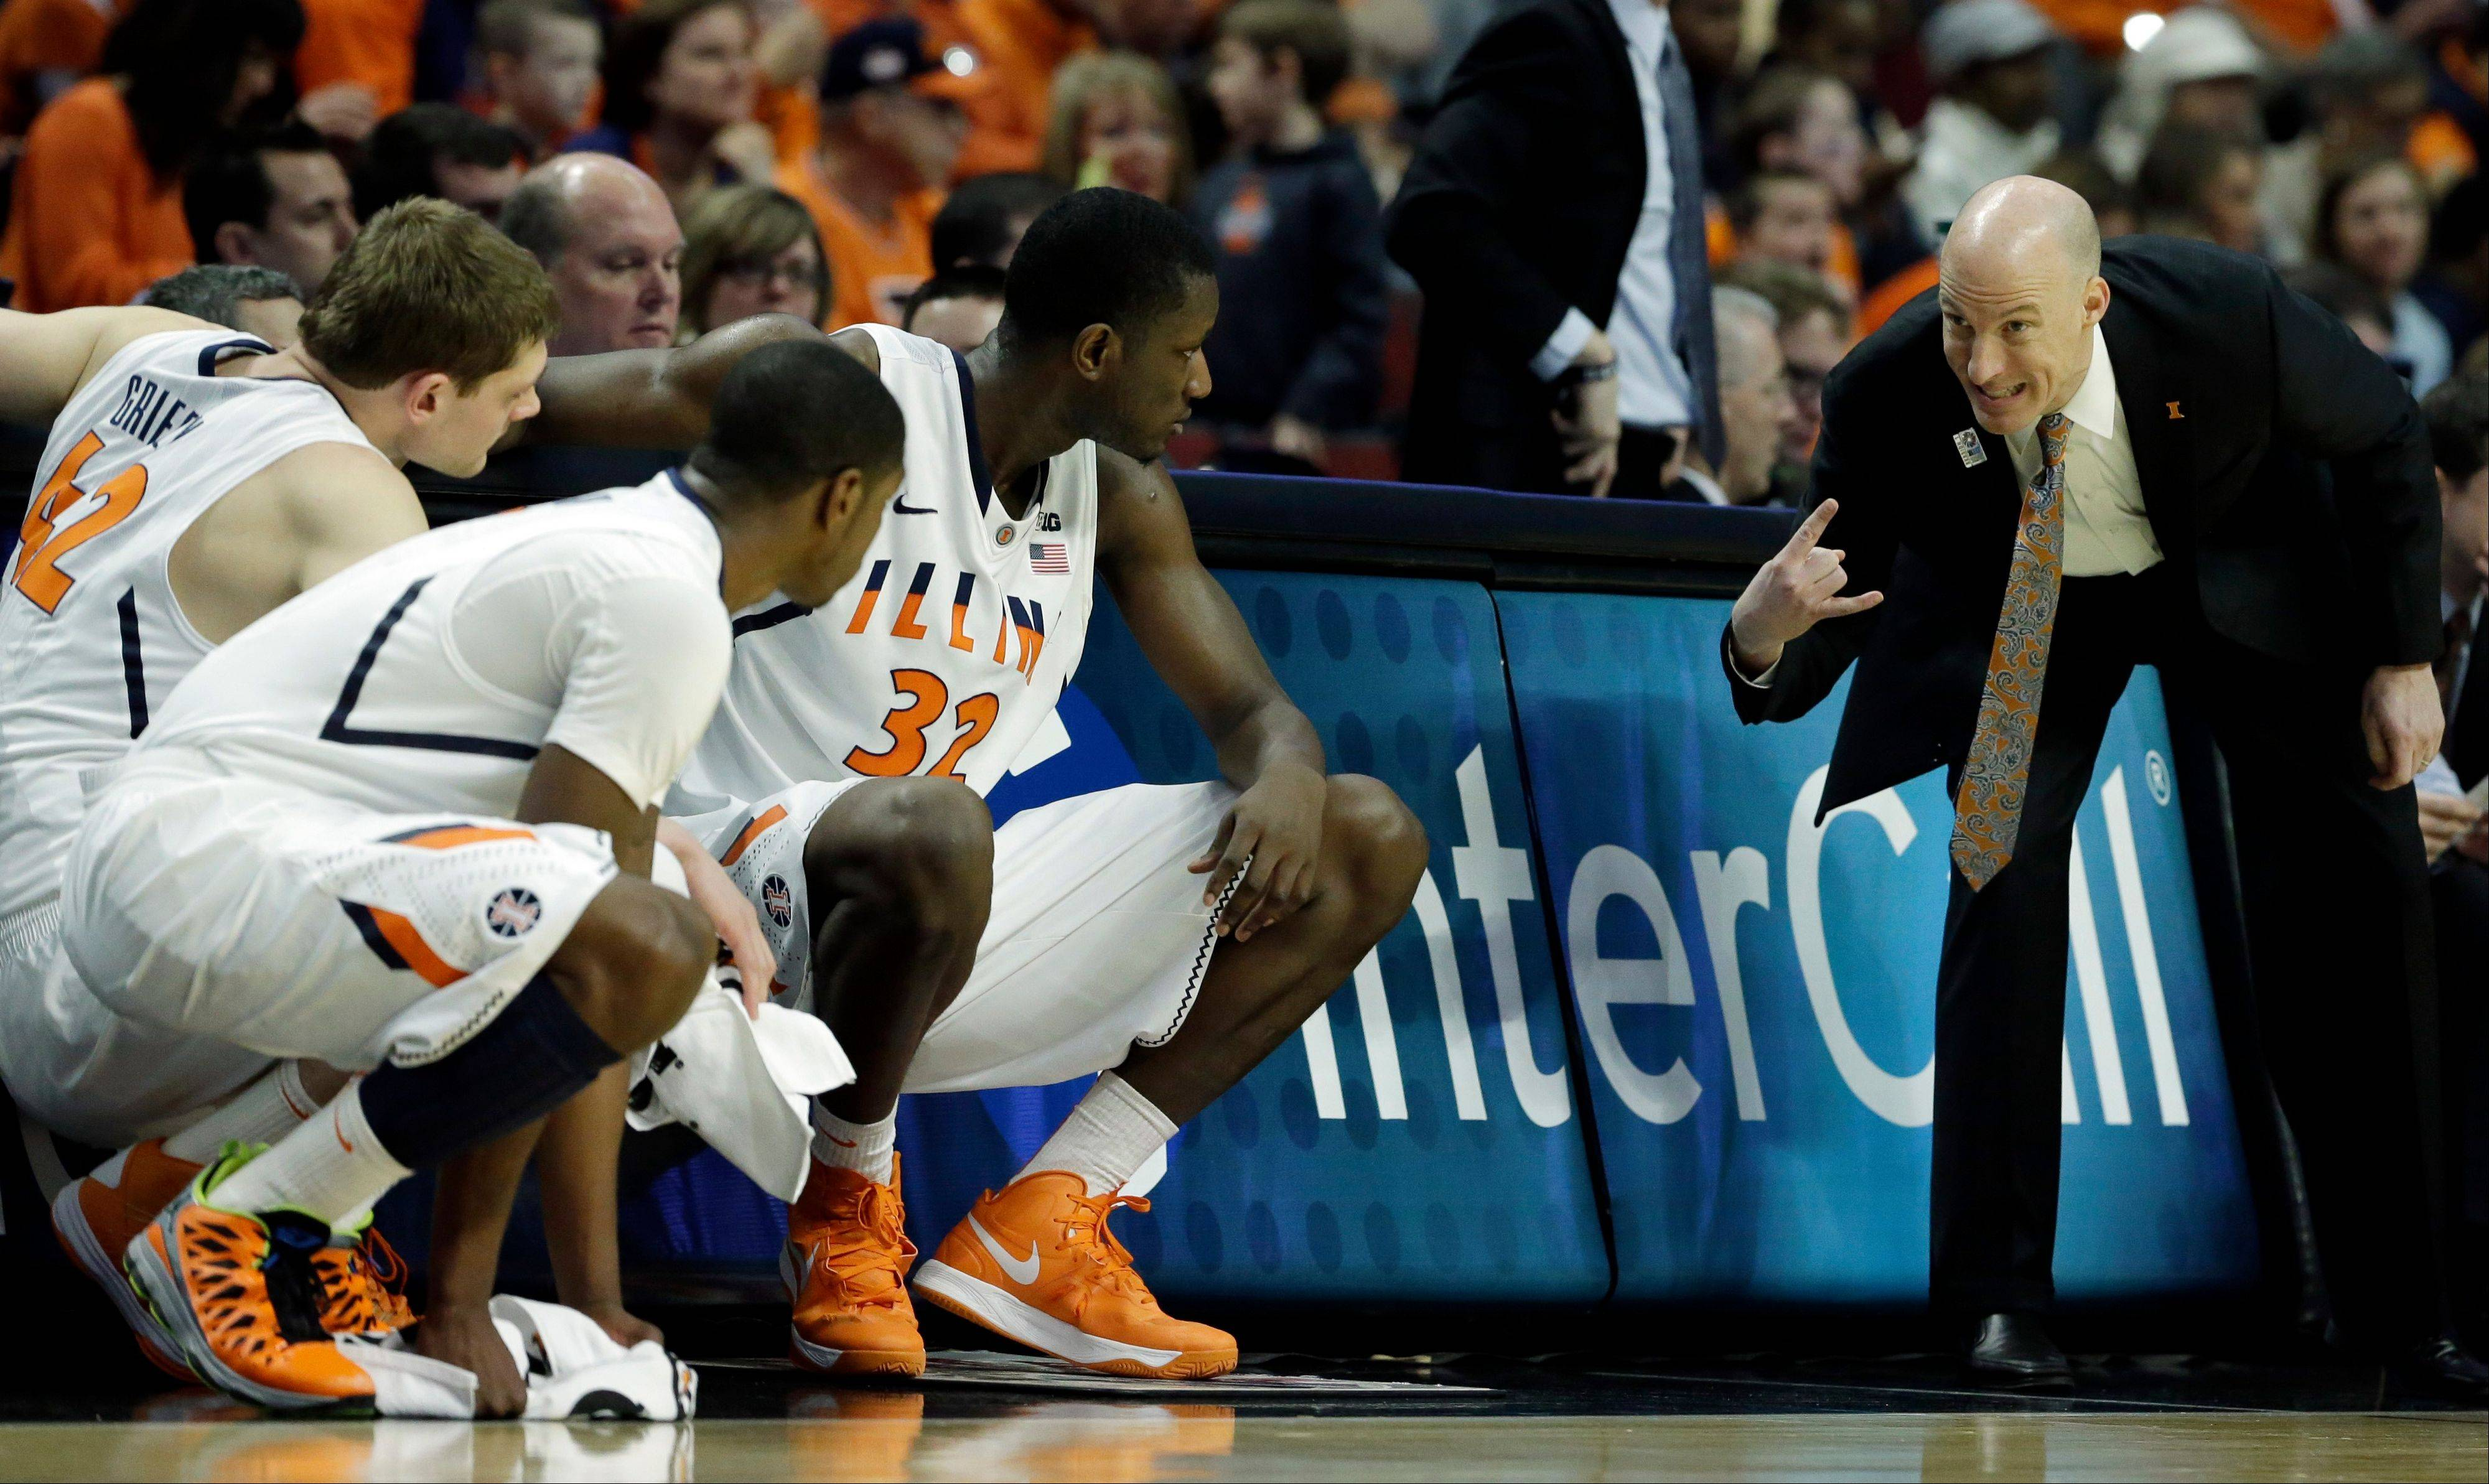 Illinois head coach John Groce helped his team get to the next round of the Big Ten Tournament with a win Thursday over Minnesota. Up next: Indiana.